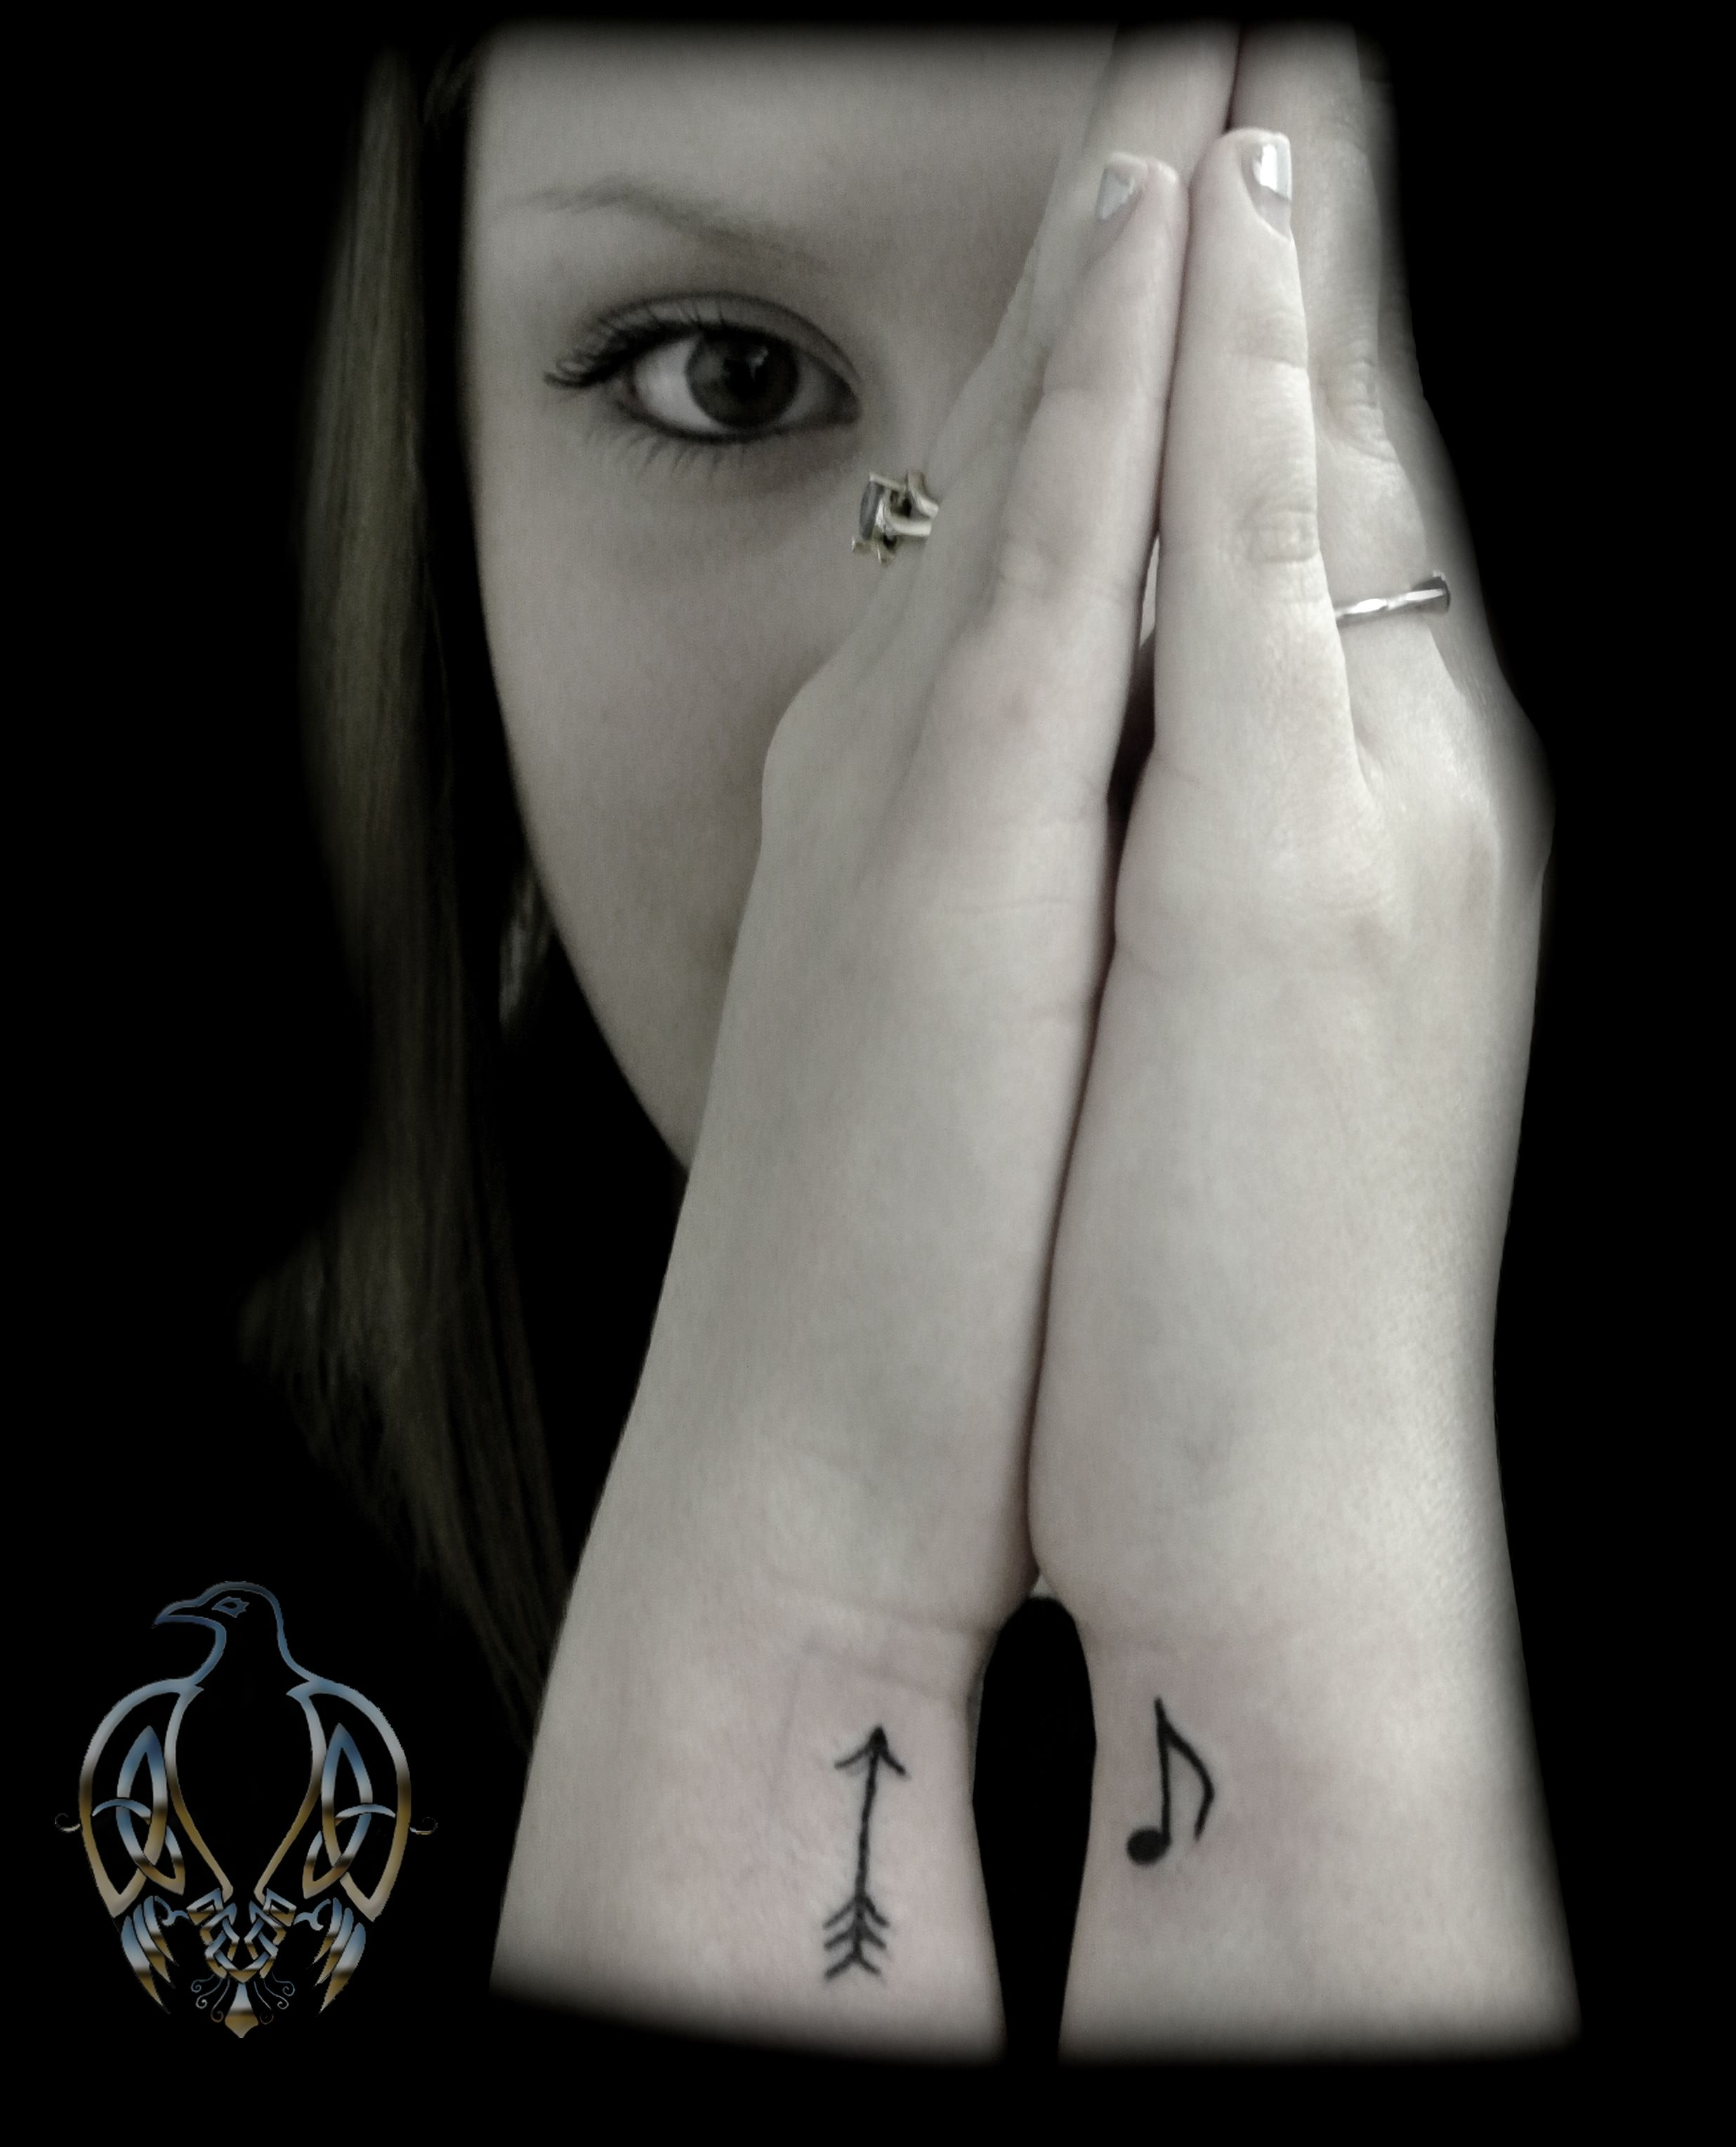 Wrist tattoo music arrow note tattoos galore pinterest